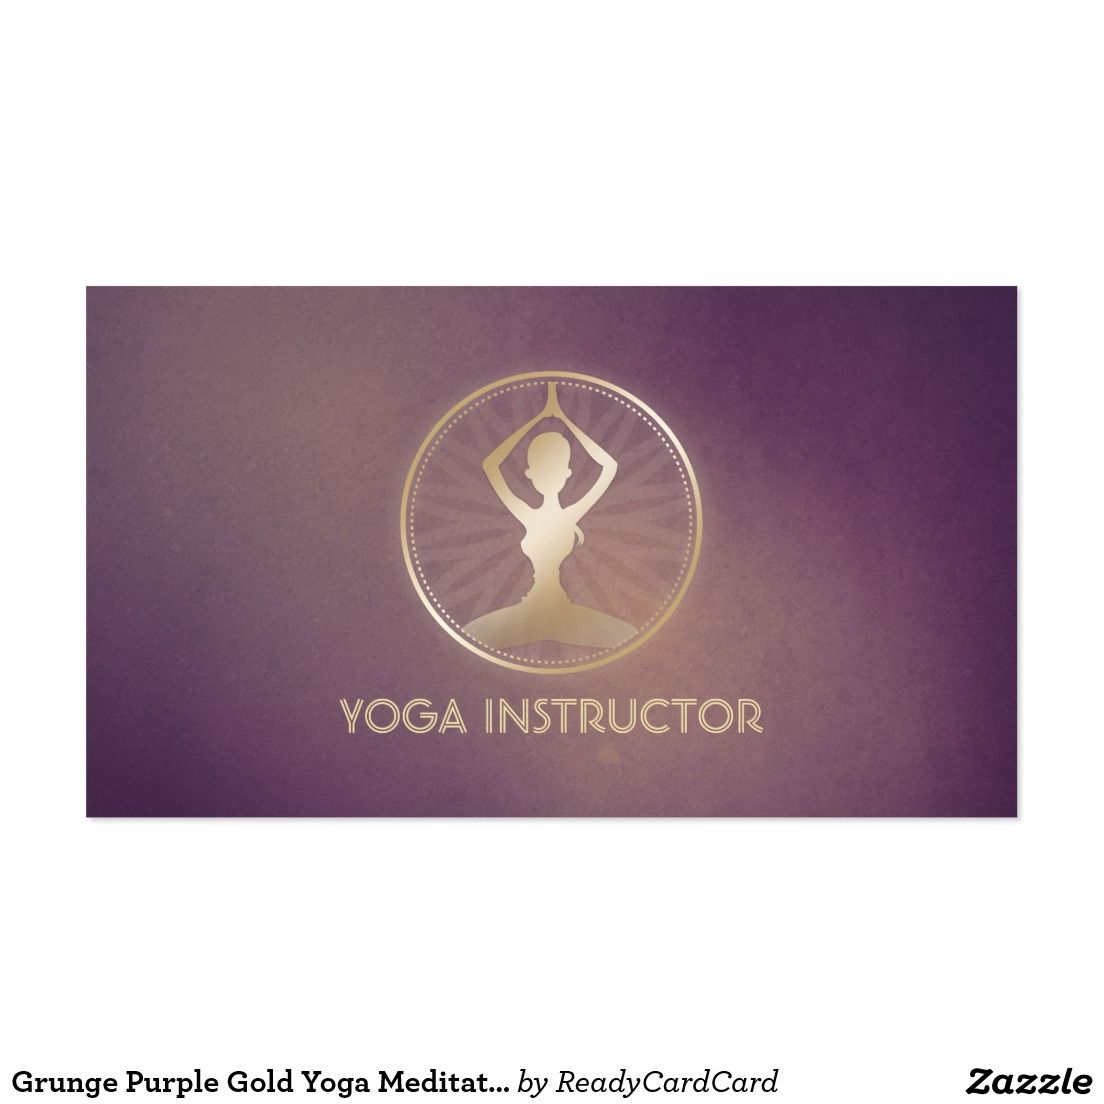 Grunge Purple Gold Yoga Meditation Pose ZEN Symbol Business Card ...